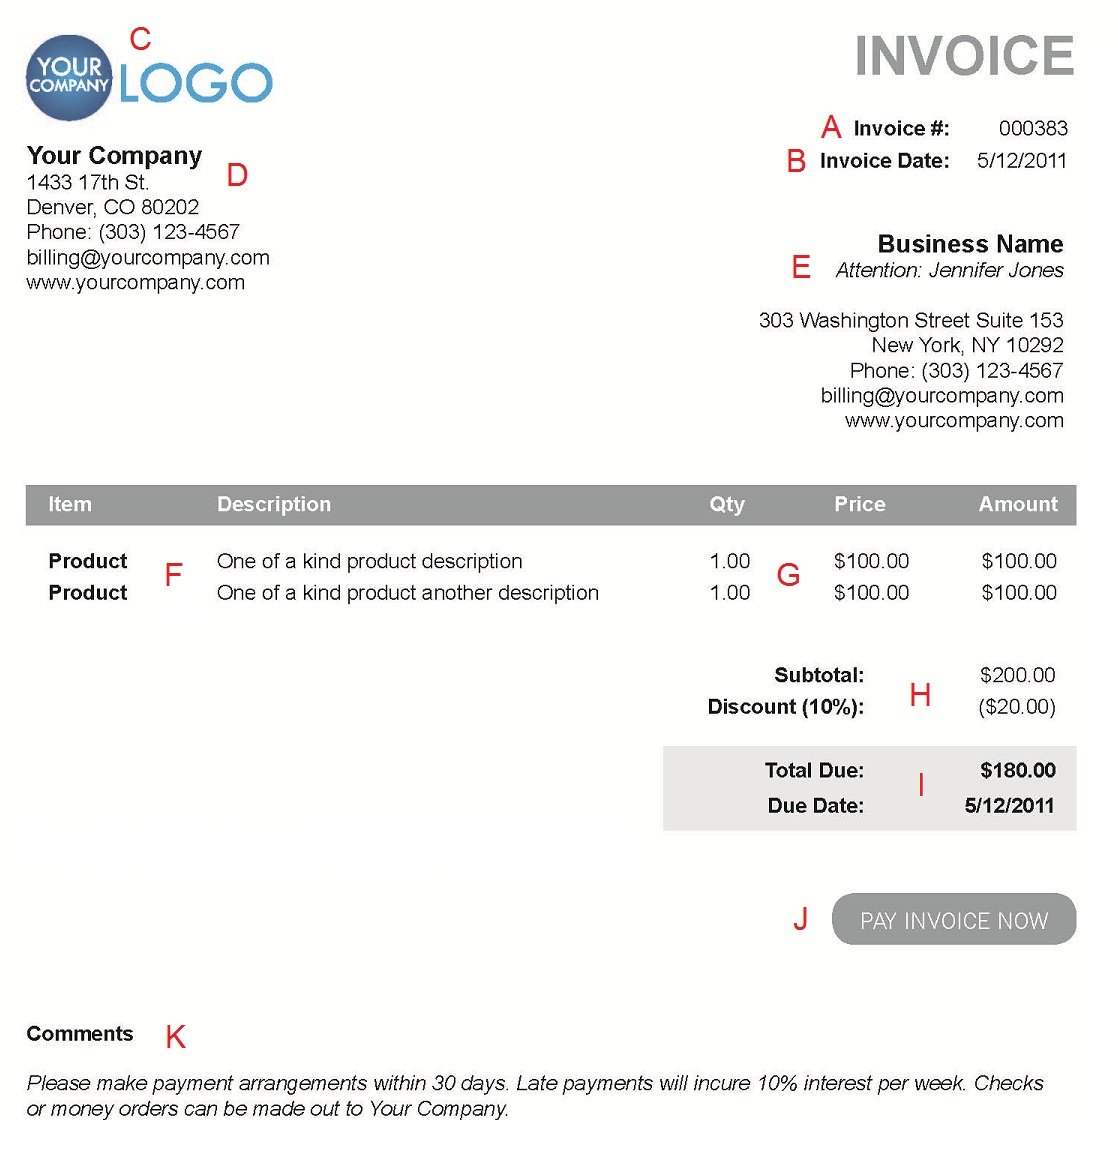 Coolmathgamesus  Inspiring The  Different Sections Of An Electronic Payment Invoice With Exciting A  With Delightful Microsoft Works Invoice Template Also How To Find Out Invoice Price Of Car In Addition Free Printable Invoice Maker And Handyman Invoices As Well As Videographer Invoice Additionally Invoice Car Pricing From Paysimplecom With Coolmathgamesus  Exciting The  Different Sections Of An Electronic Payment Invoice With Delightful A  And Inspiring Microsoft Works Invoice Template Also How To Find Out Invoice Price Of Car In Addition Free Printable Invoice Maker From Paysimplecom